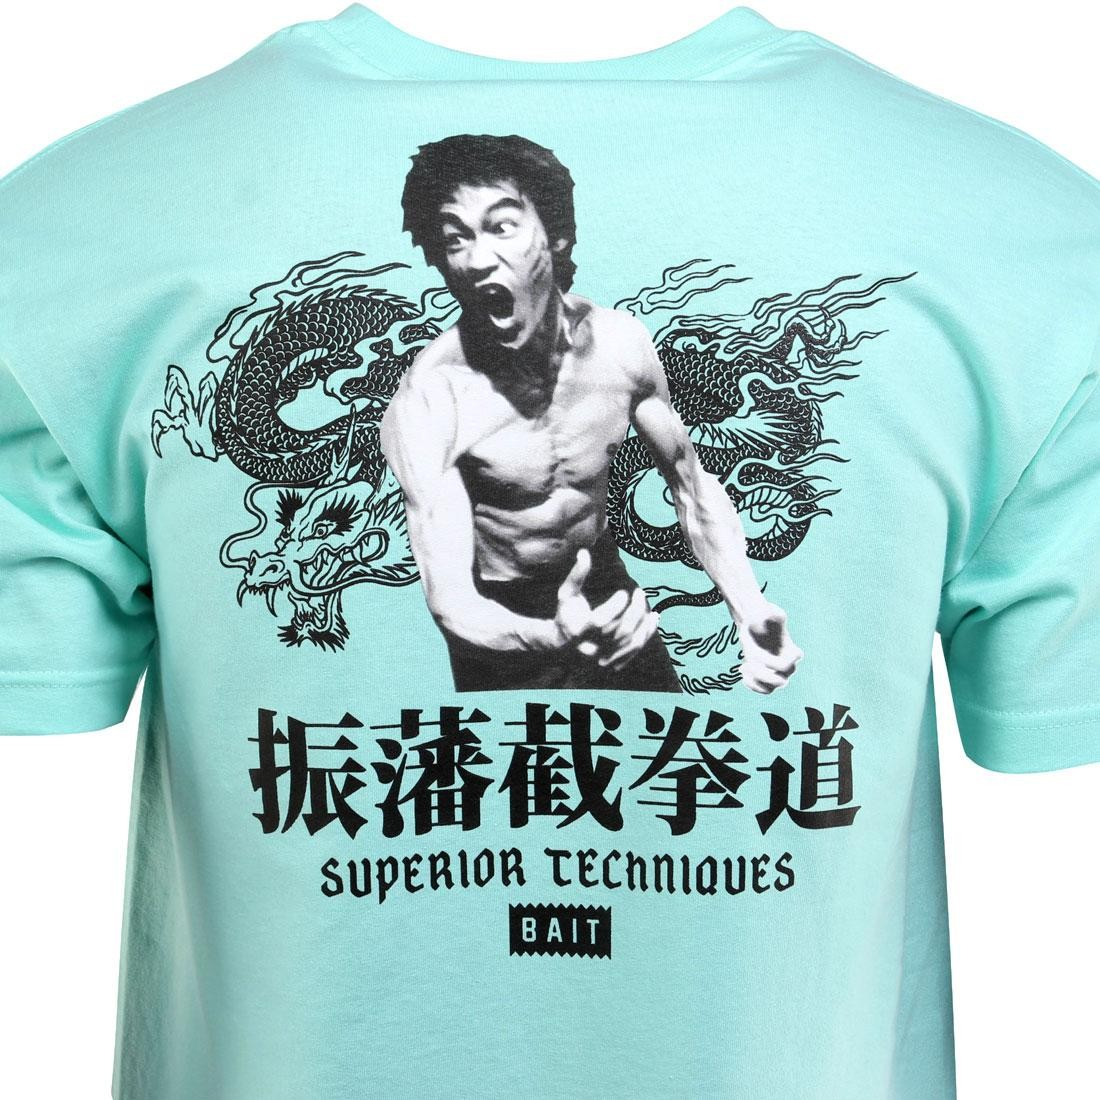 BAIT x Bruce Lee Superior Techniques Tee teal // celadon // black